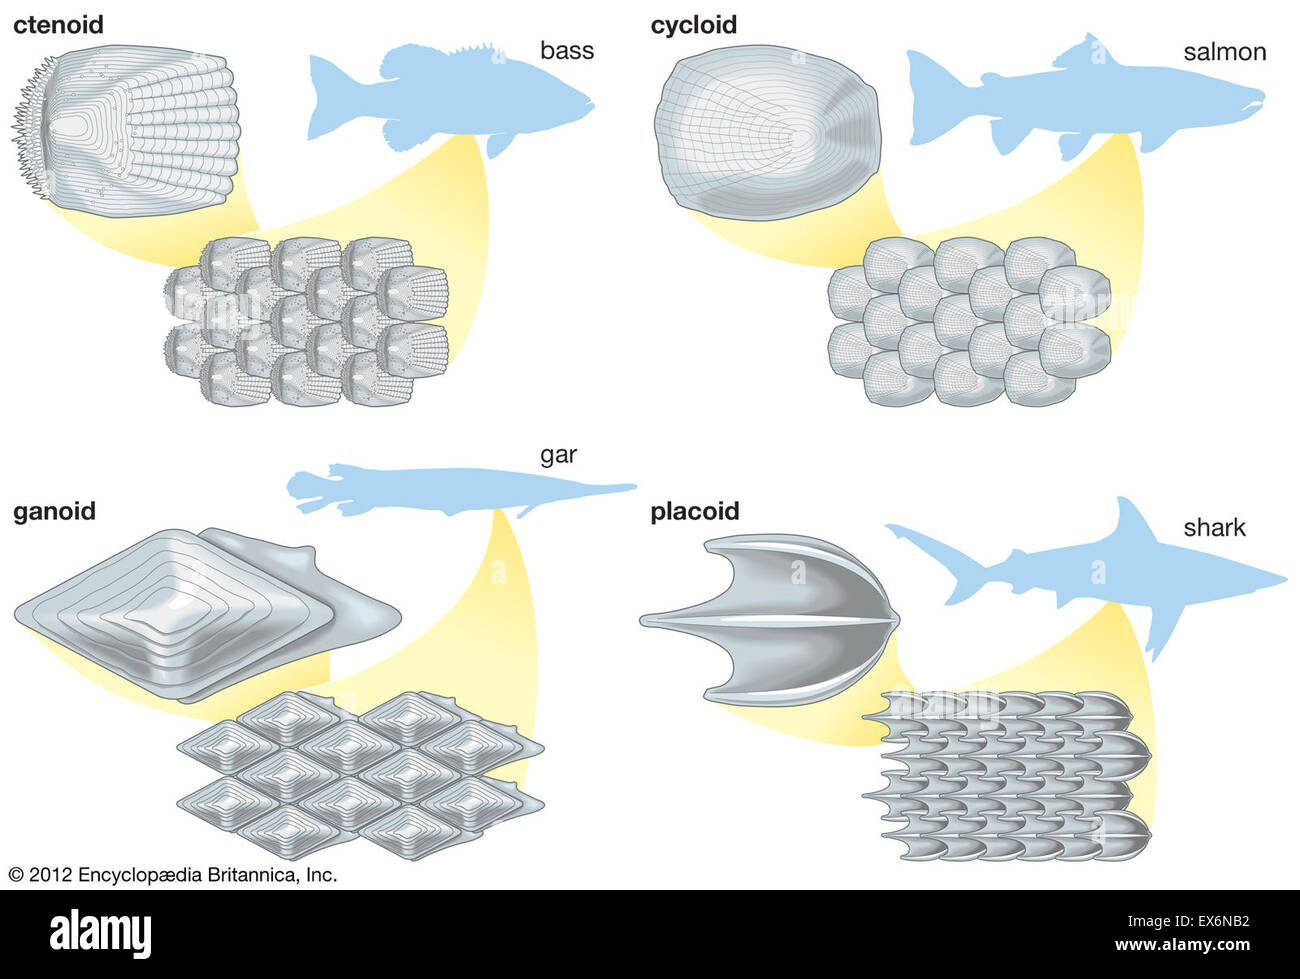 Types of fish scales stock photo royalty free image for Get fish scale